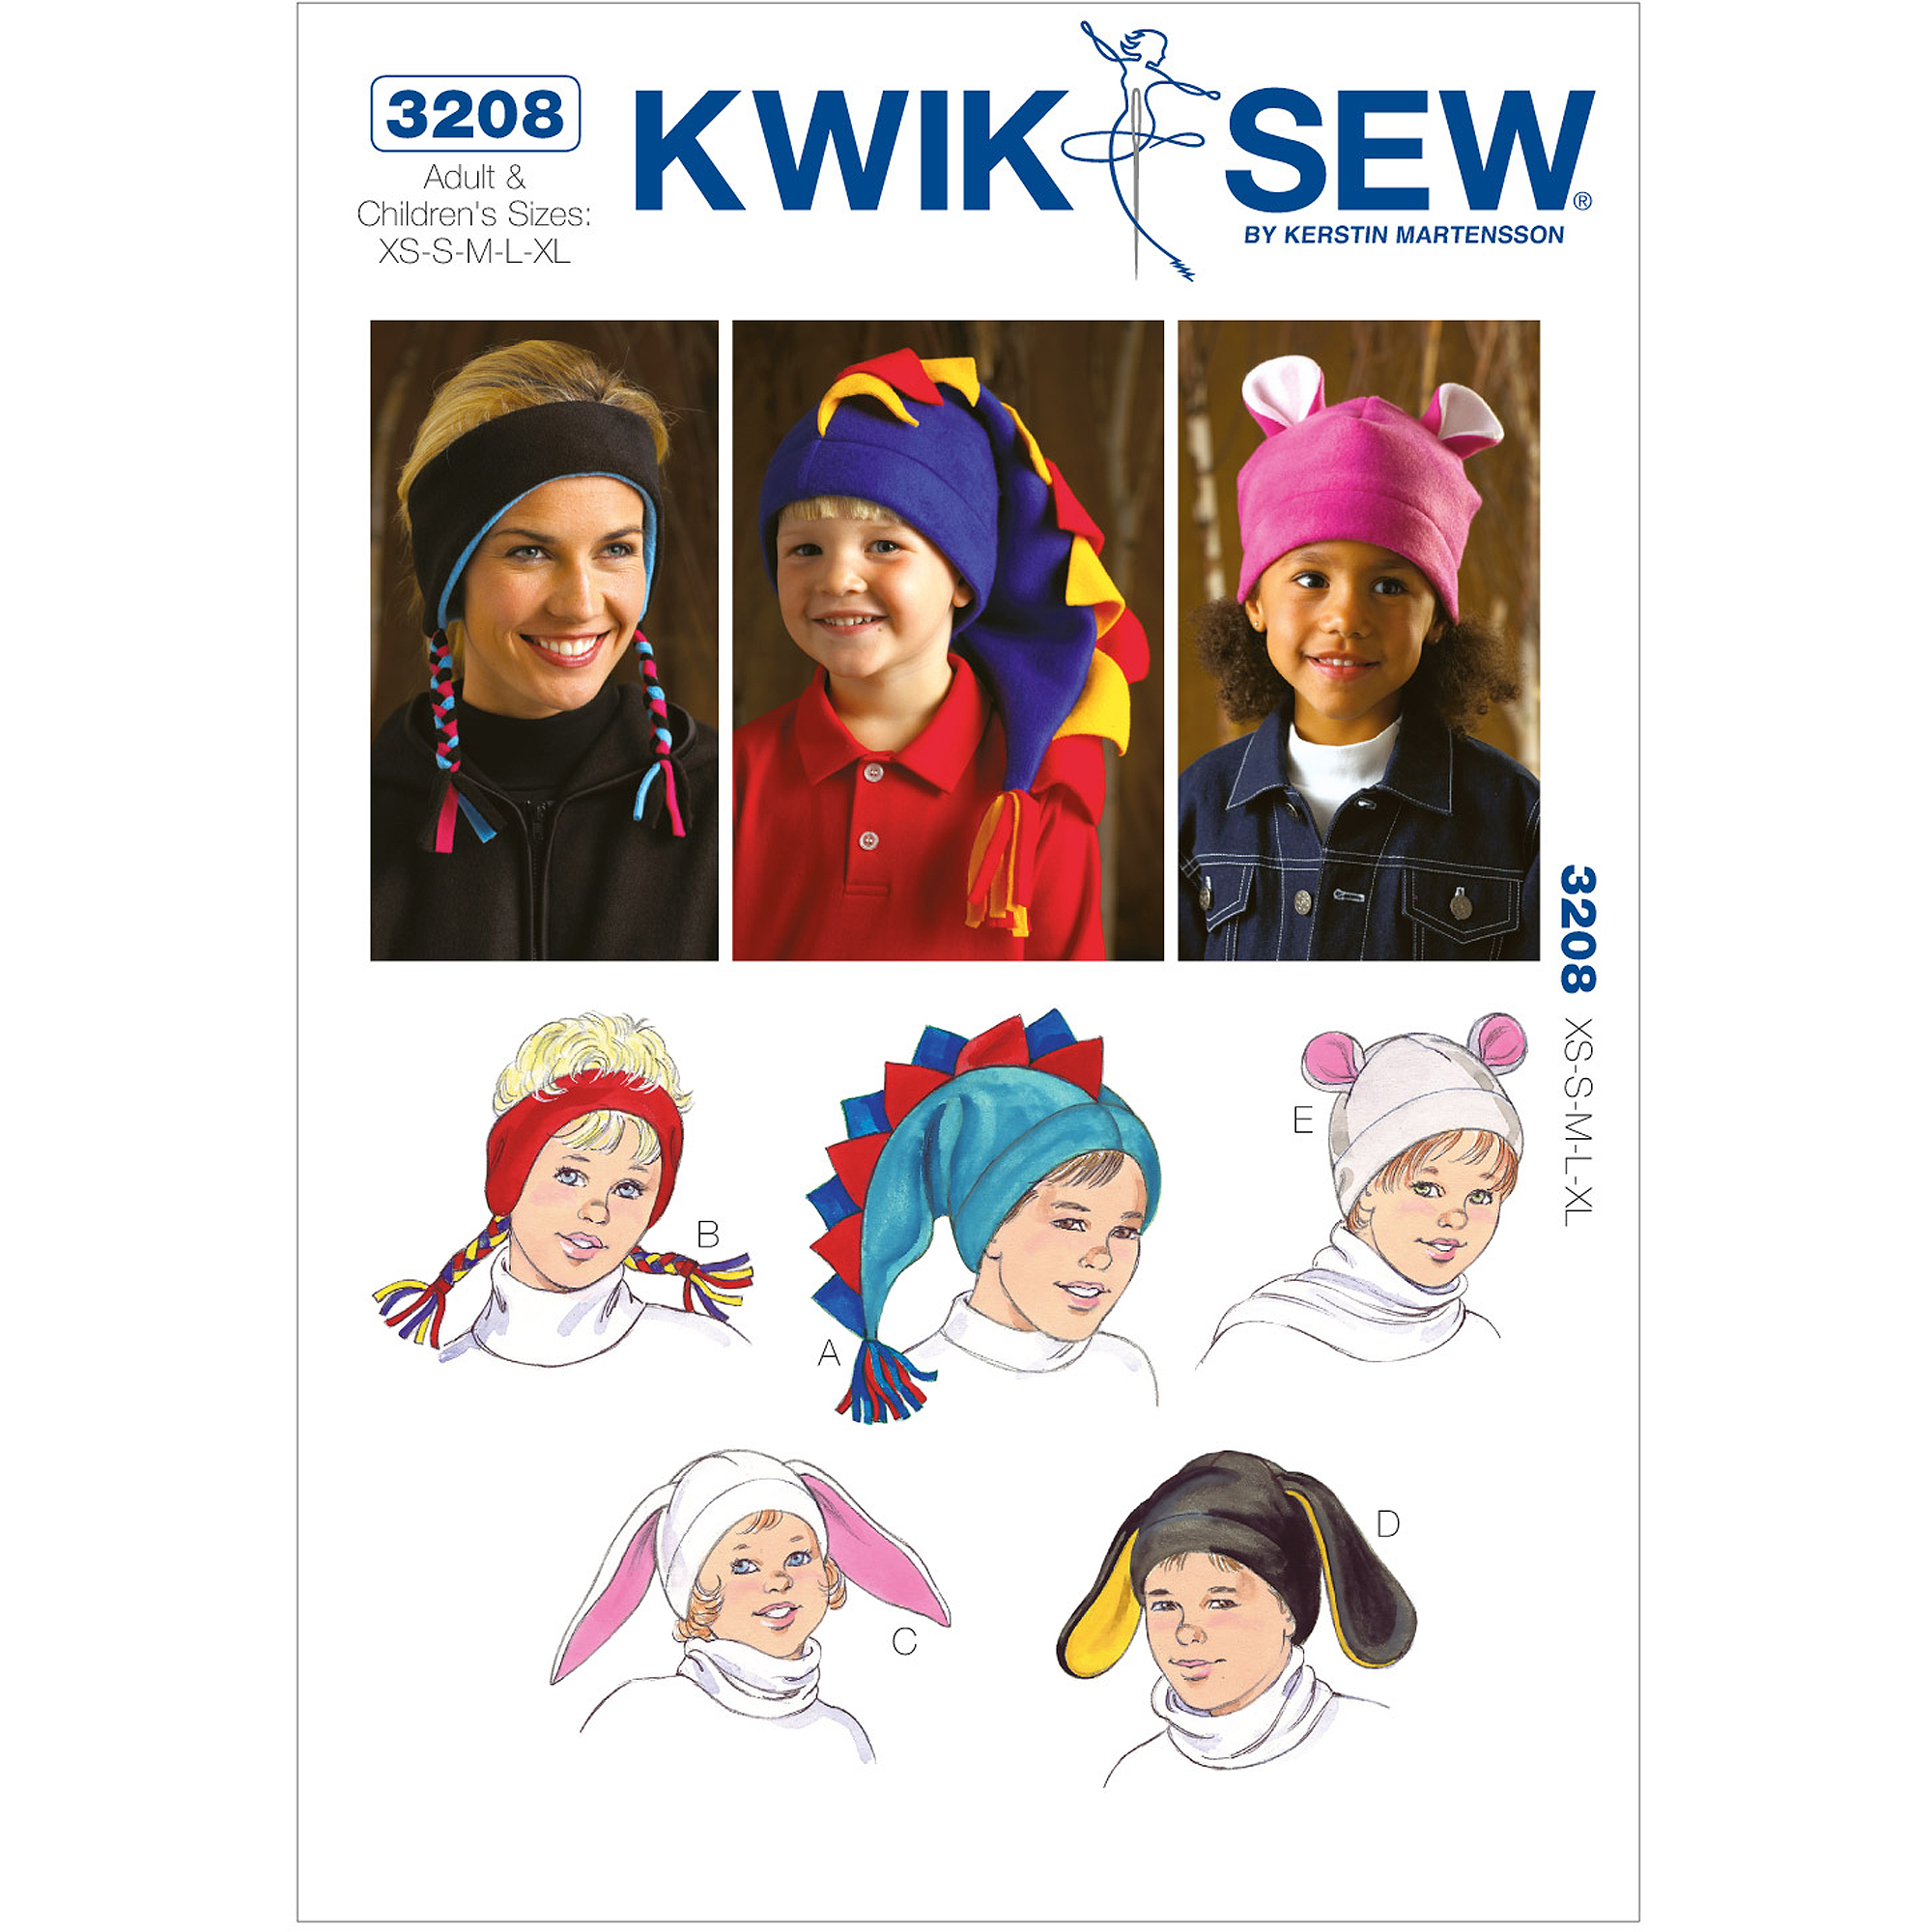 Kwik Sew Pattern Hats, Adult and Children's (XS, S, M, L, XL)